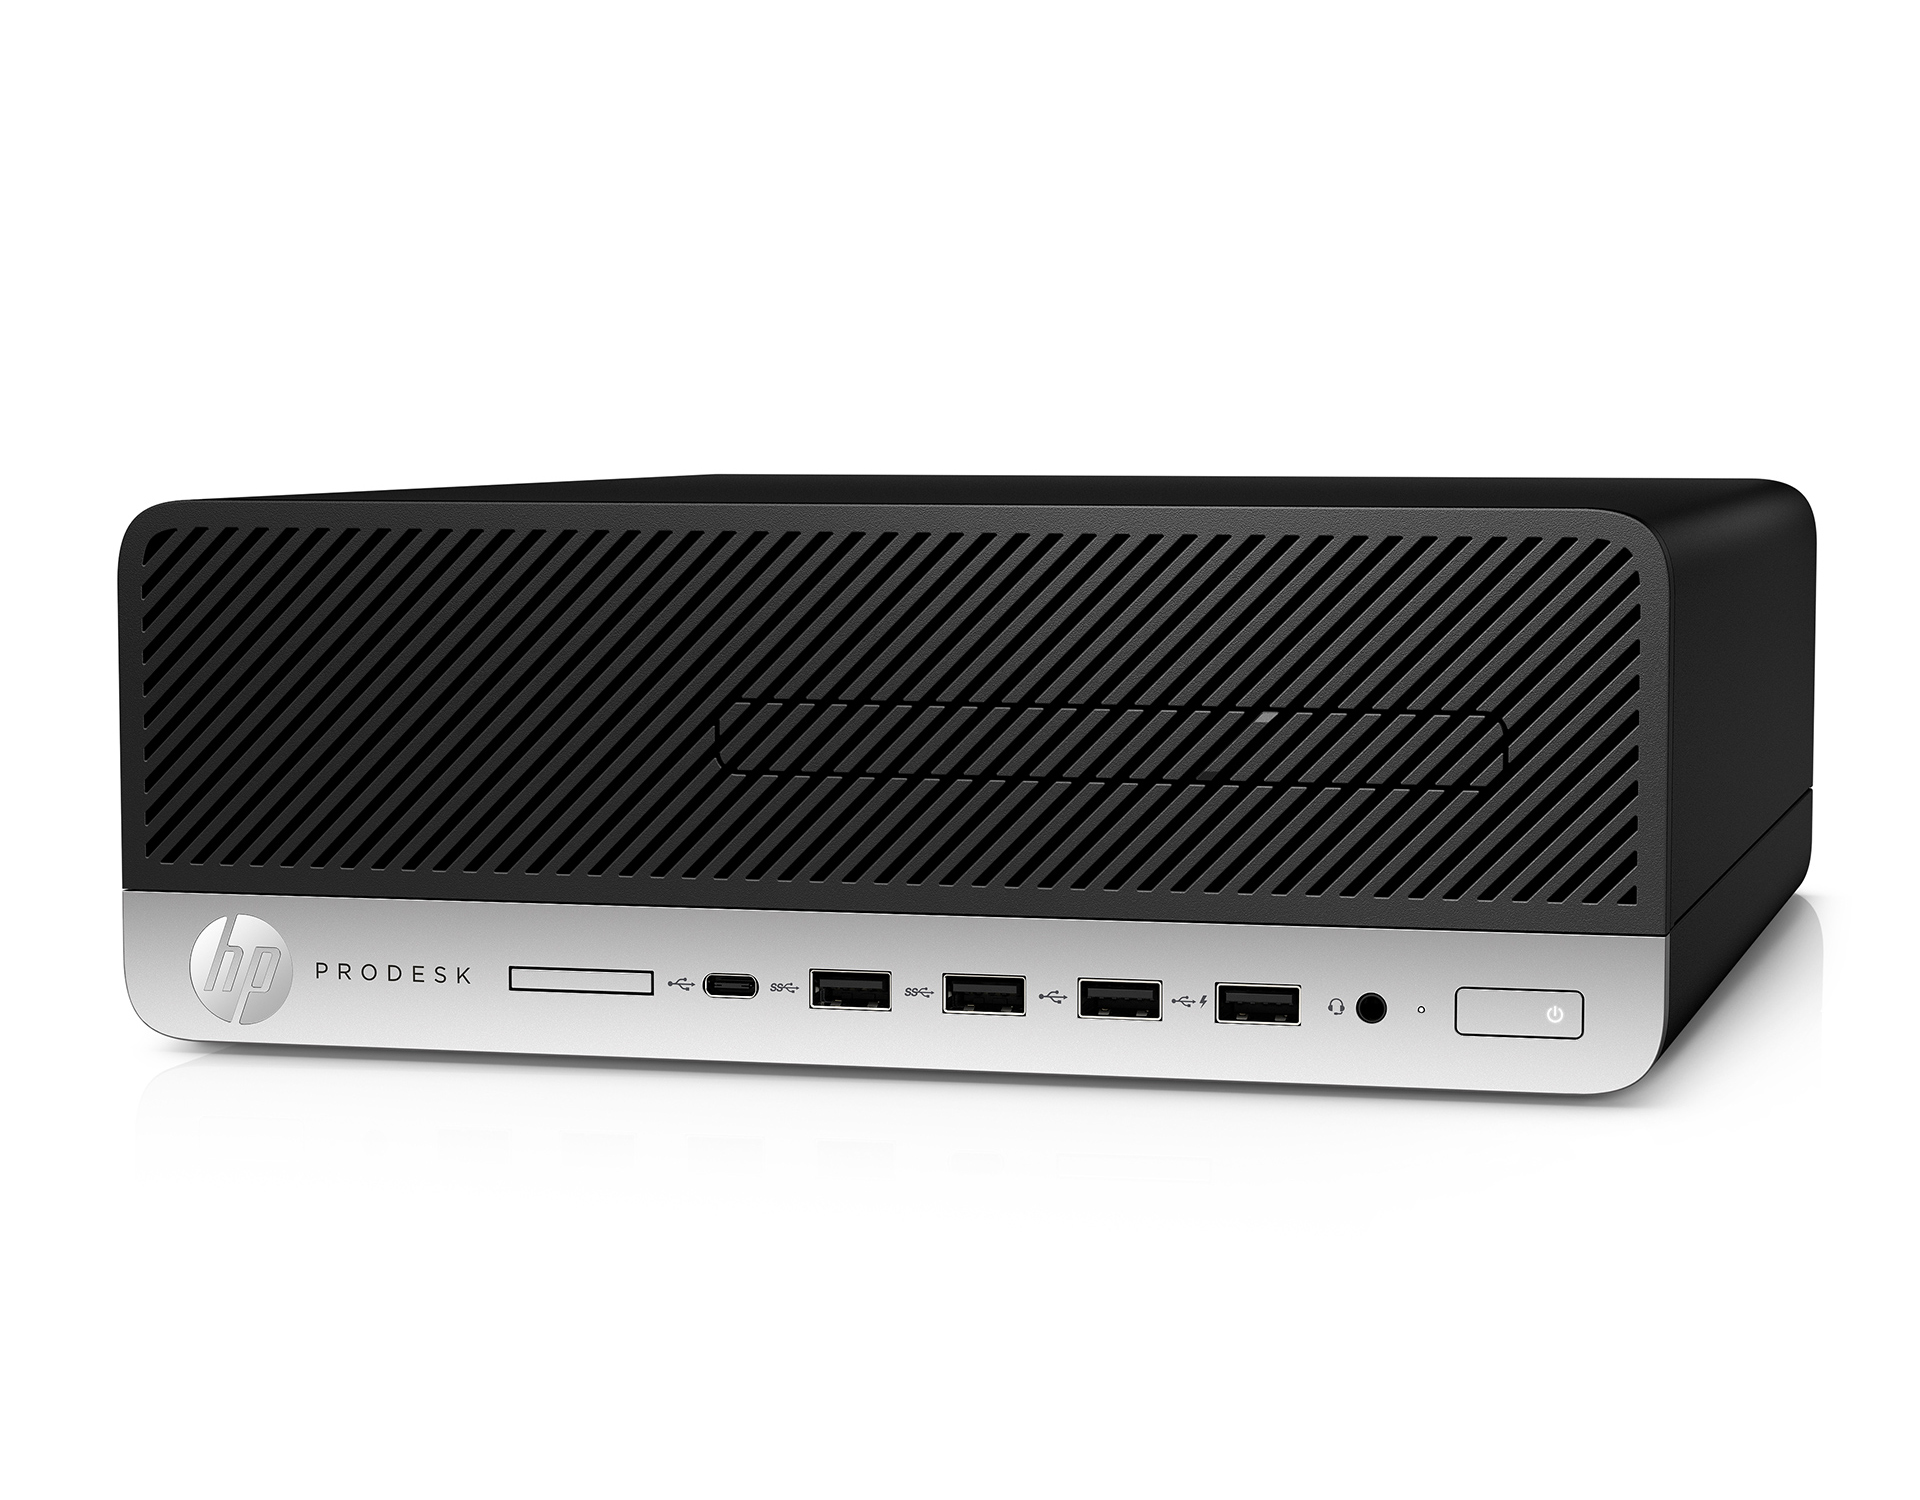 HP ProDesk 600 G5 SF